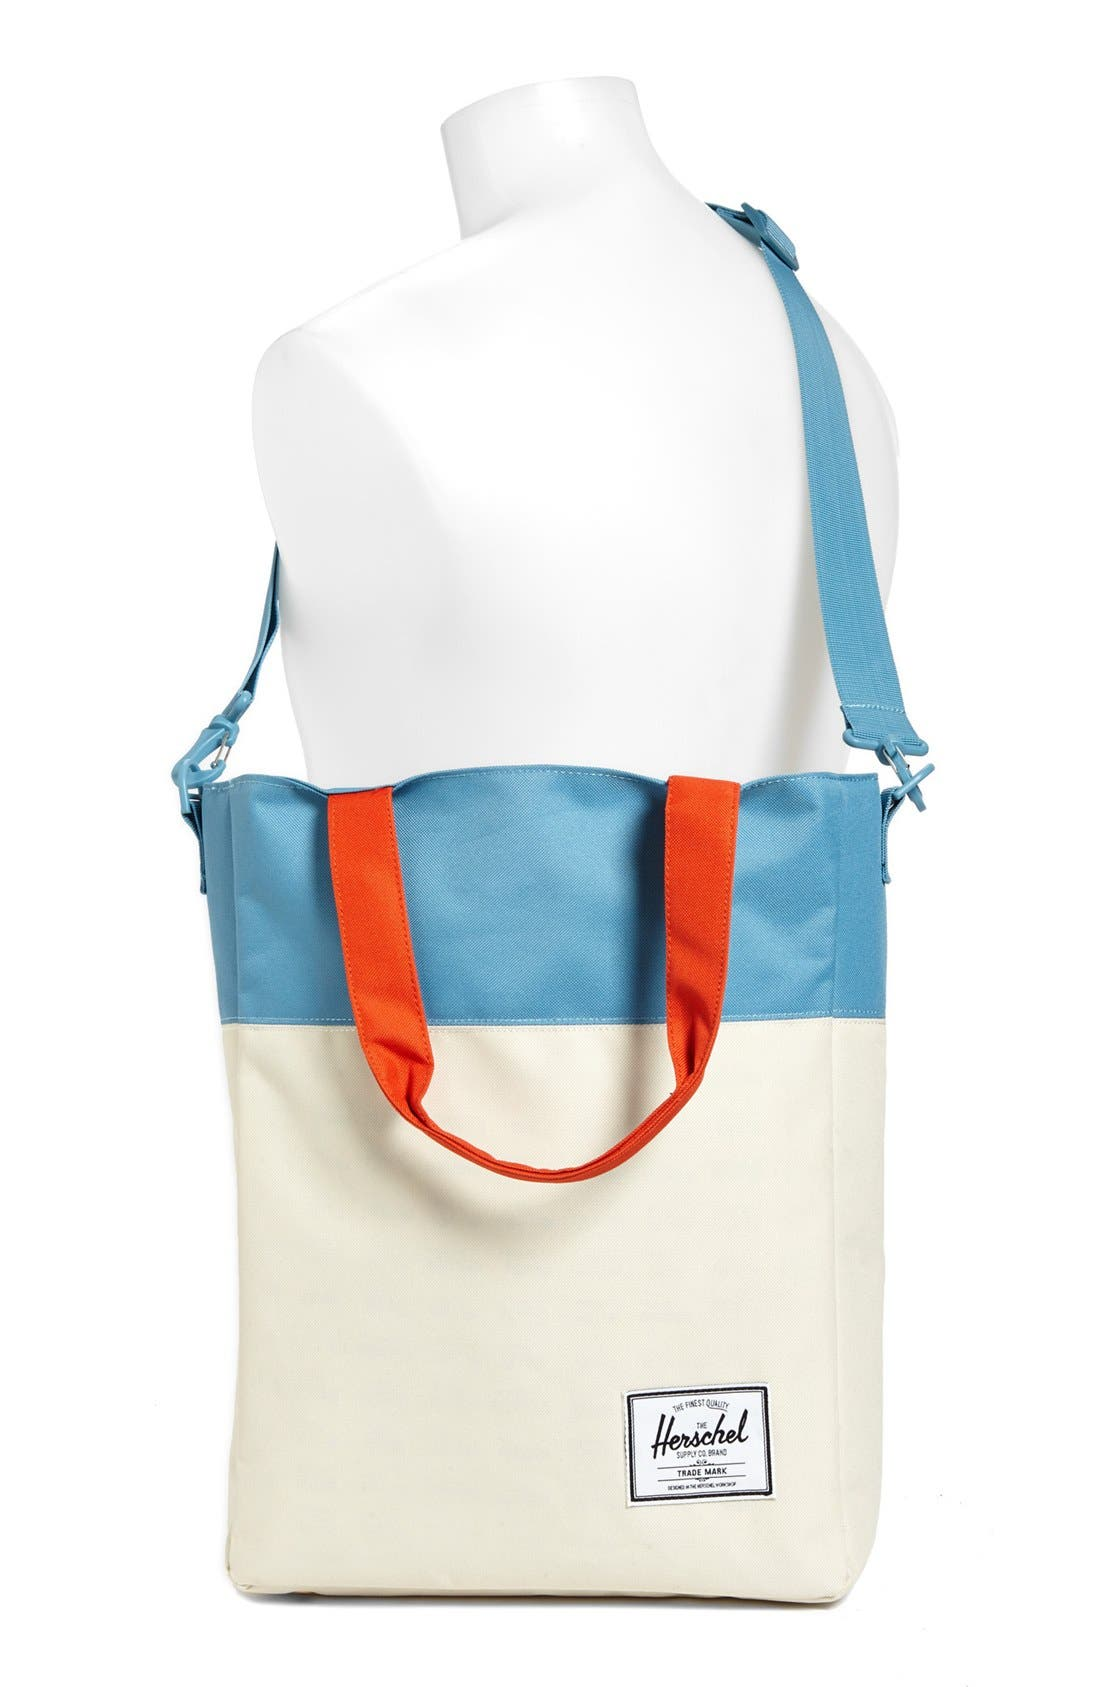 Alternate Image 2  - Herschel Supply Co. 'Pier - Rad Cars with Rad Surfboards Collection' Tote Bag